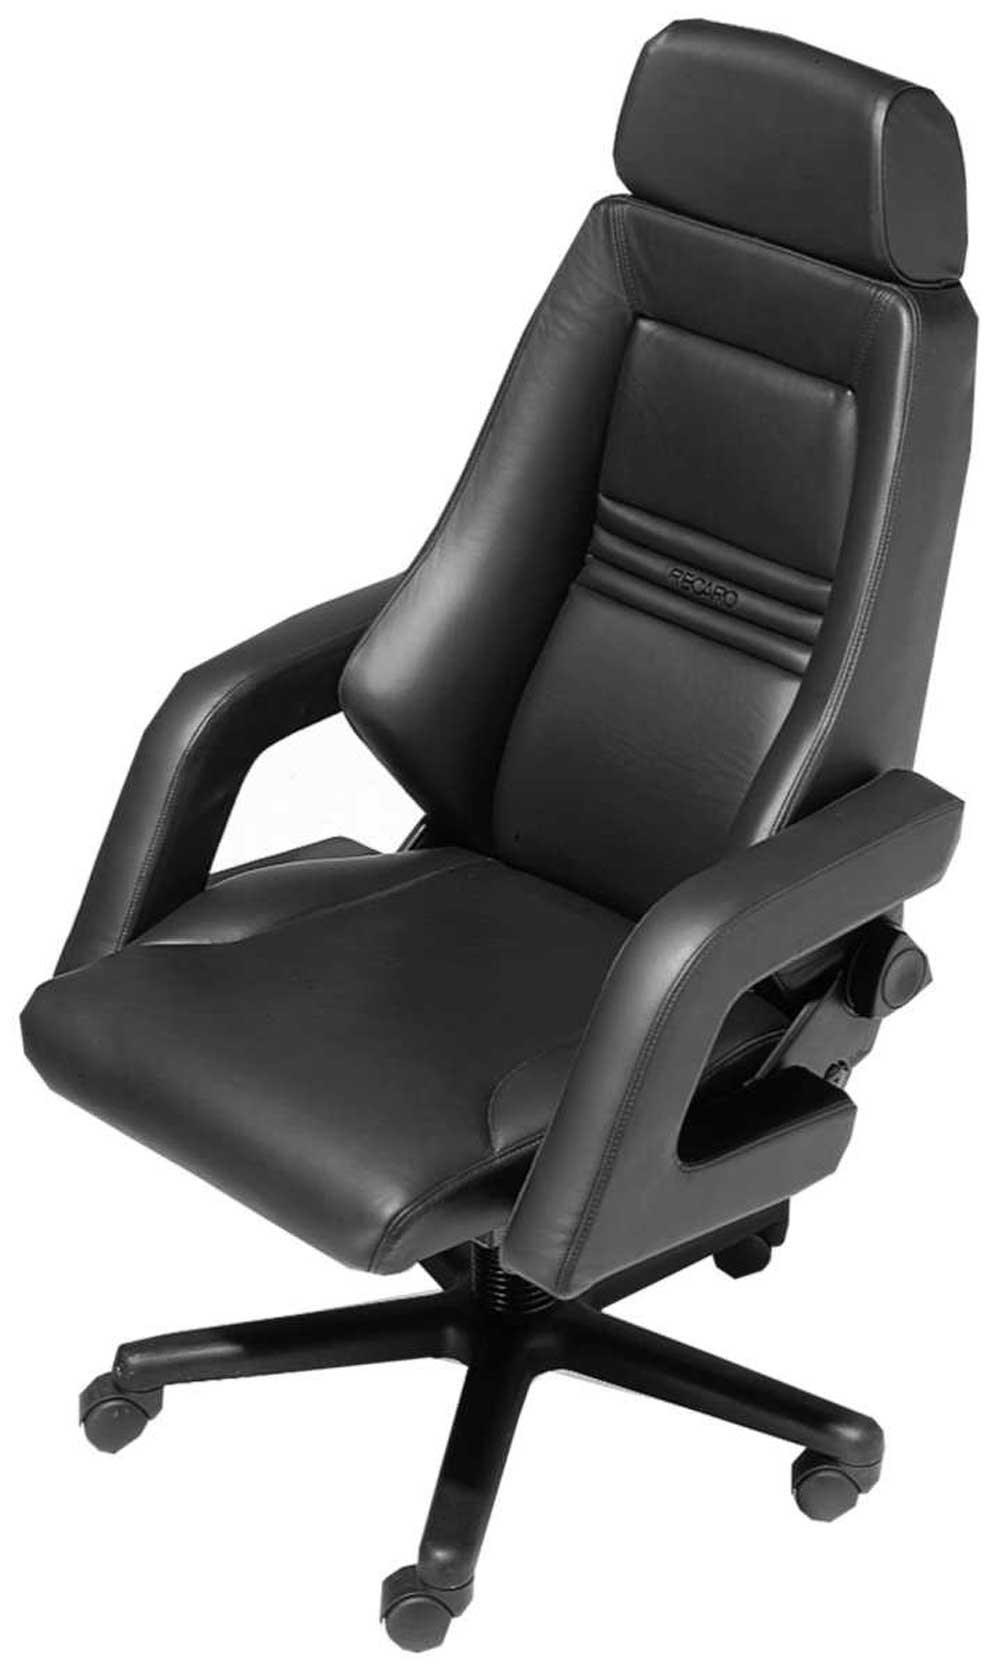 Making Savings When Purchasing Office Chairs   Office Furniture